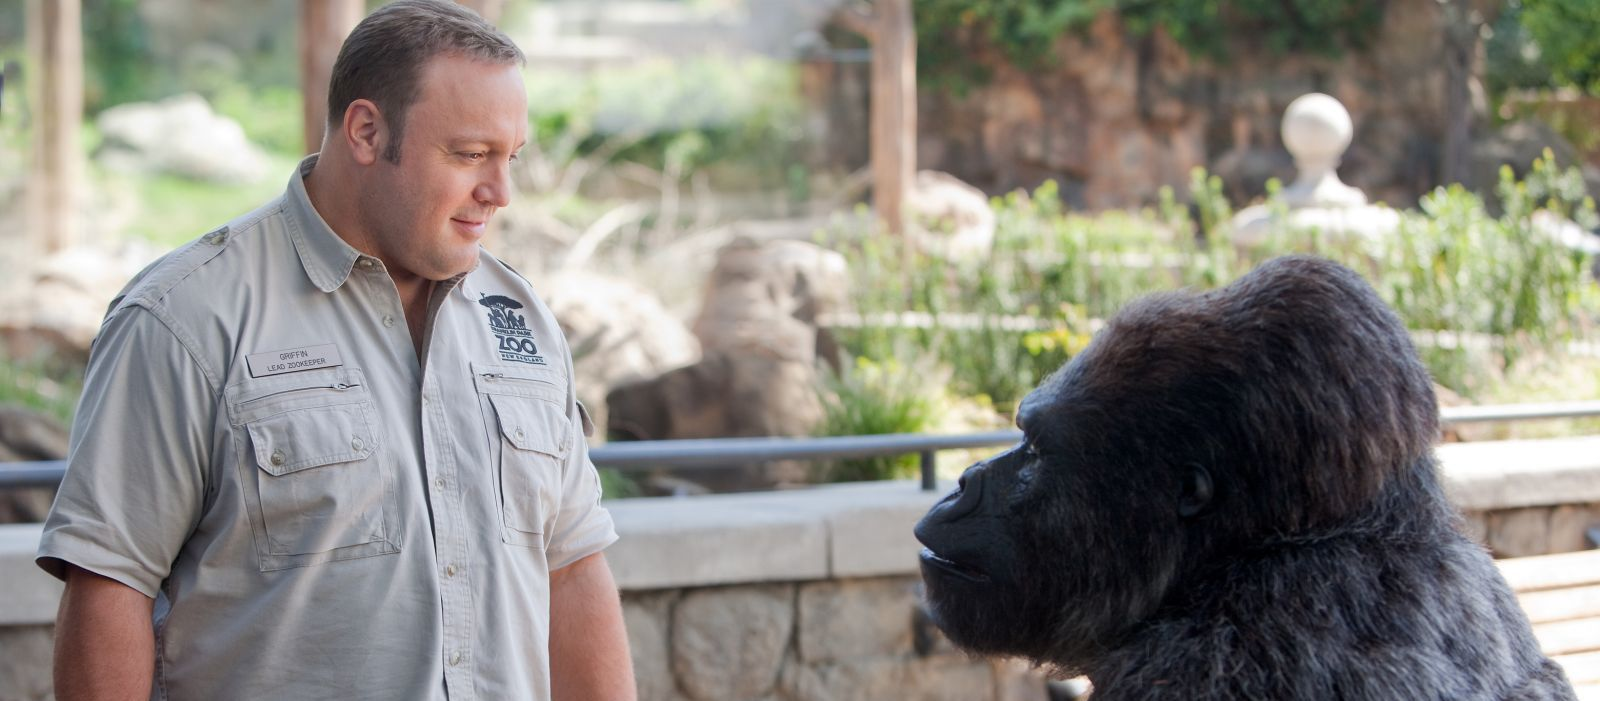 An image from Zookeeper